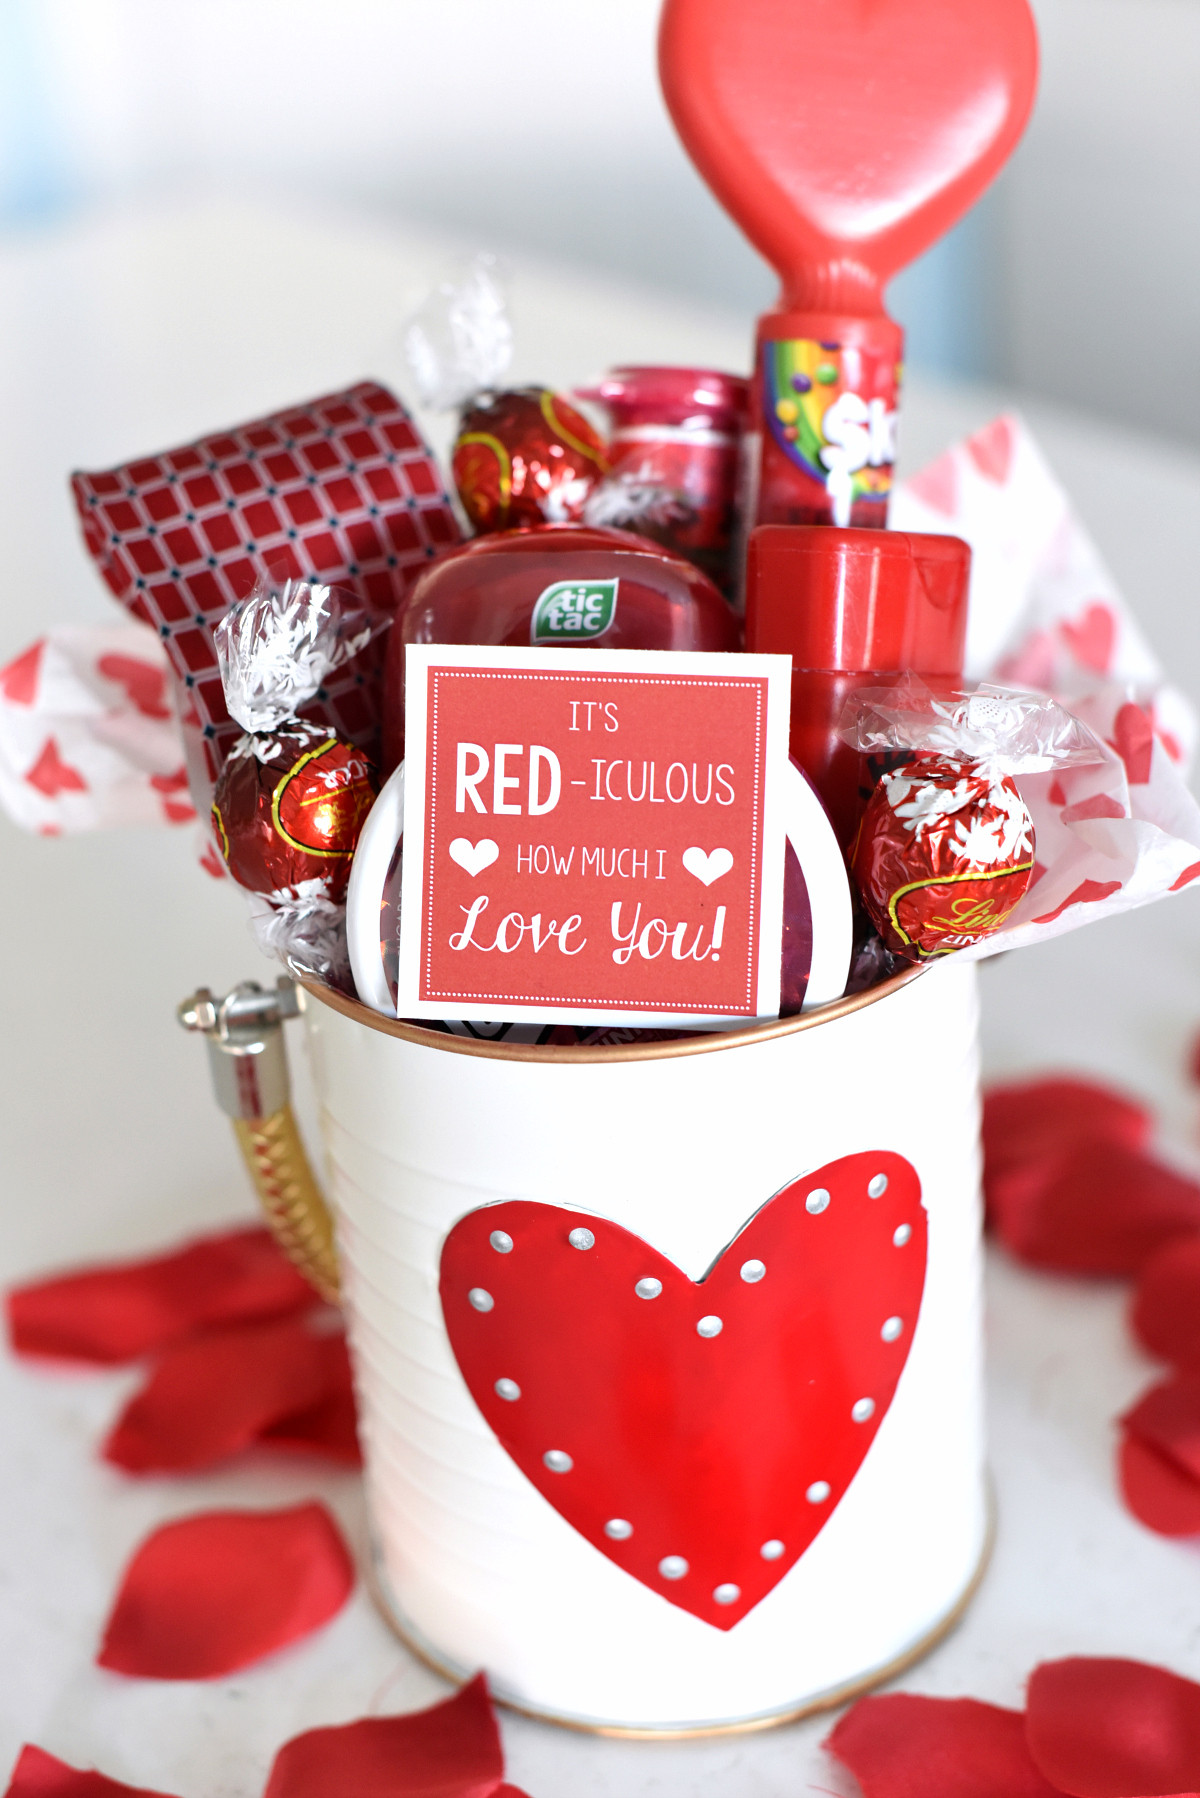 Valentines Gift Ideas For Husband  Cute Valentine s Day Gift Idea RED iculous Basket